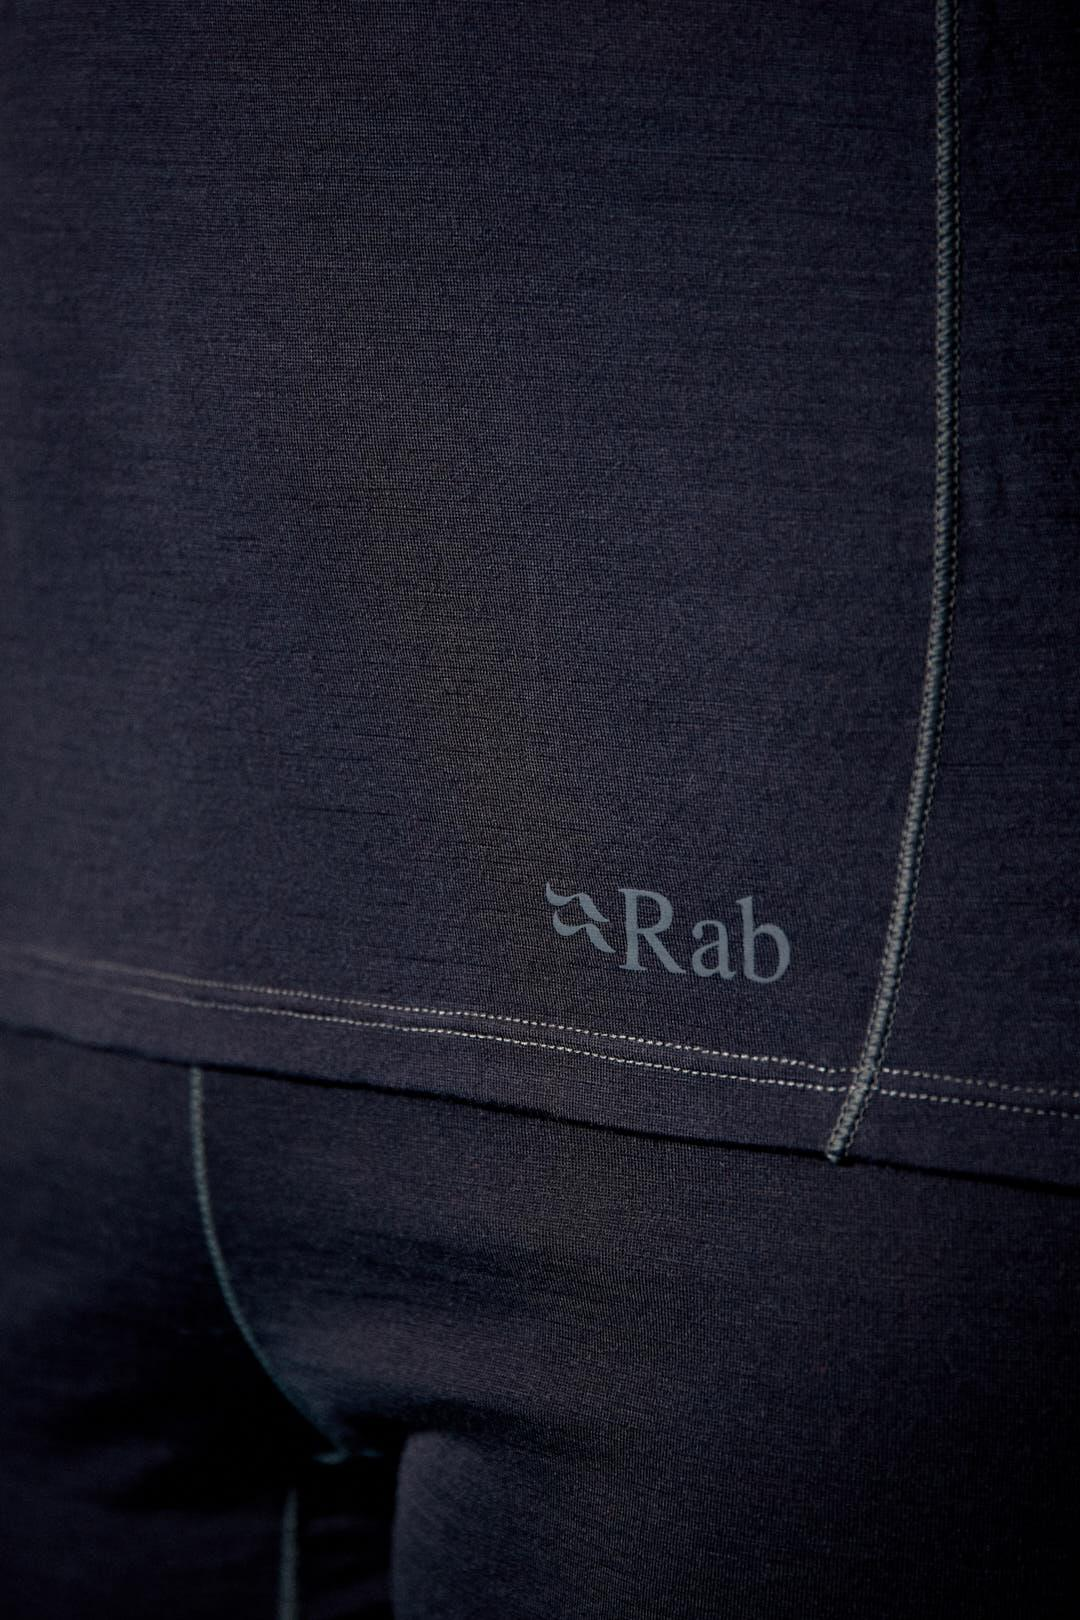 Rab Merino 120 Log Sleeved Zip Sweater for Ladies in Ebony